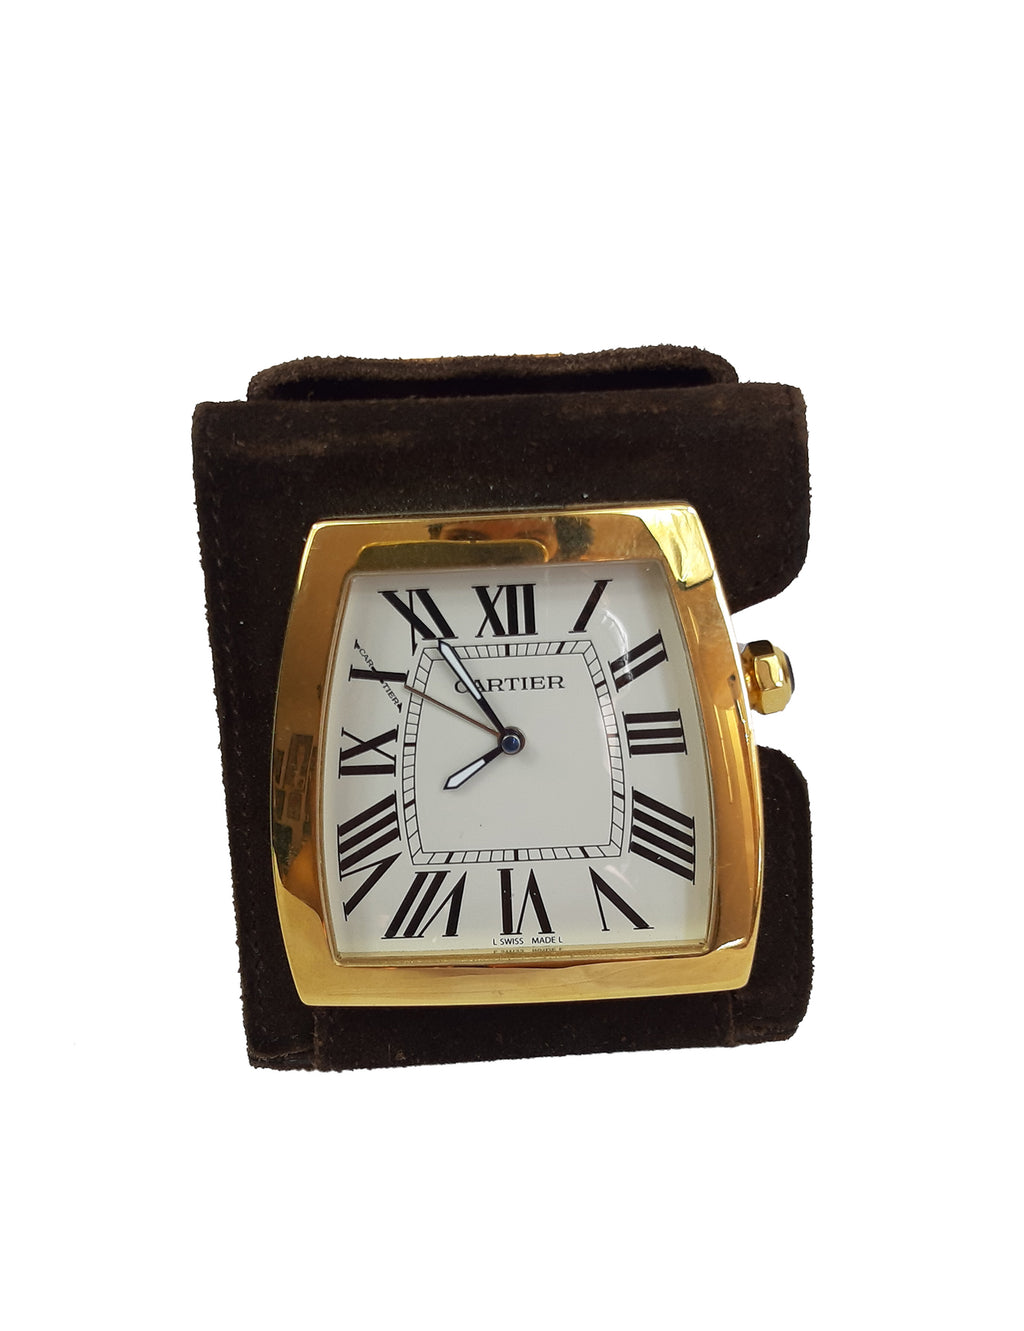 "Cartier ""La Dona"" Travel Alarm Desk Clock, Quartz Movement with Folding Brown Suede Case"